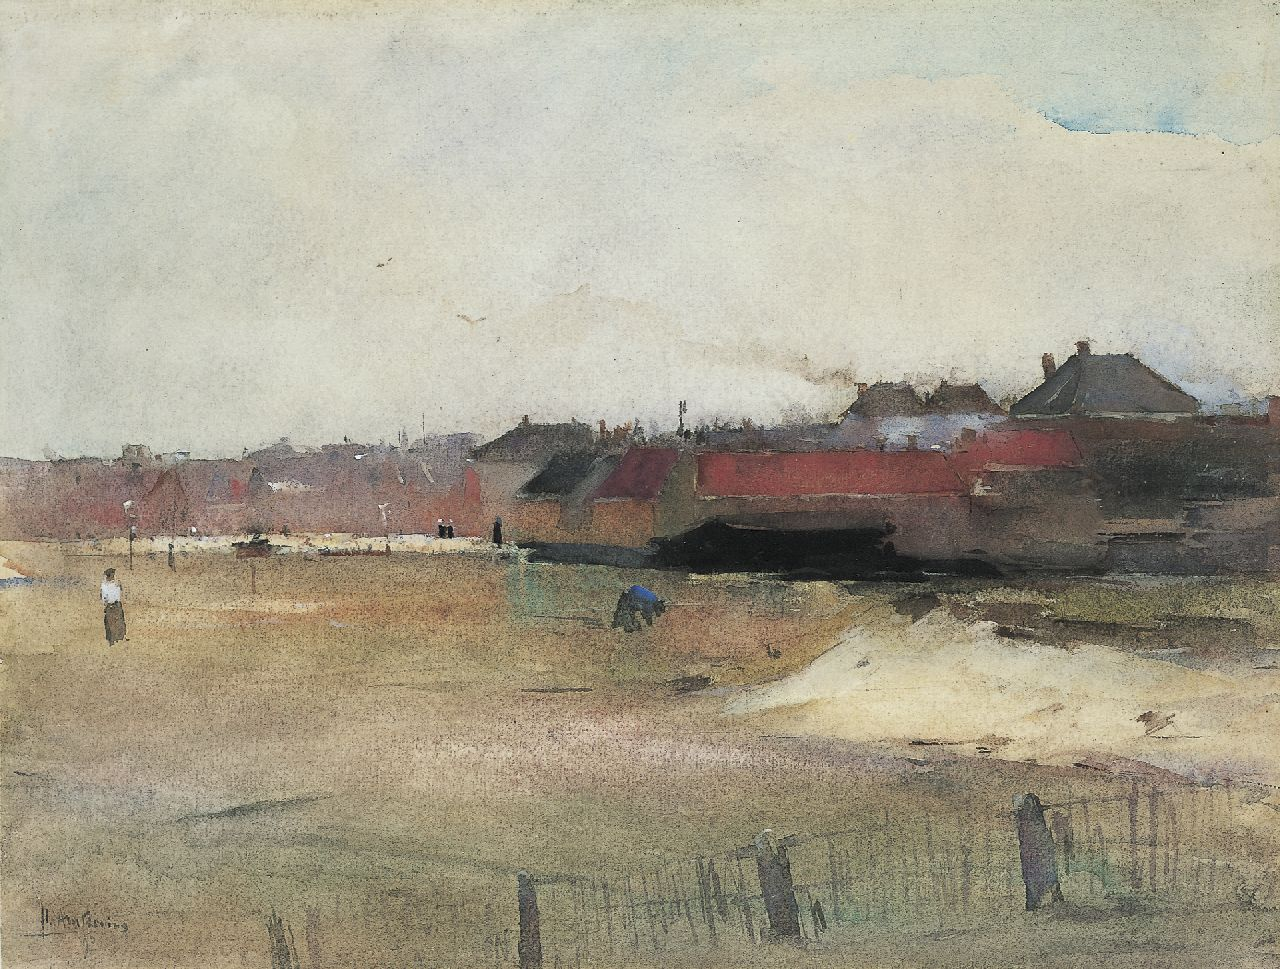 Arntzenius P.F.N.J.  | Pieter Florentius Nicolaas Jacobus 'Floris' Arntzenius, A view of a village, seen from the beach, watercolour on paper 29.8 x 39.4 cm, signed l.l. and dated '90/'95